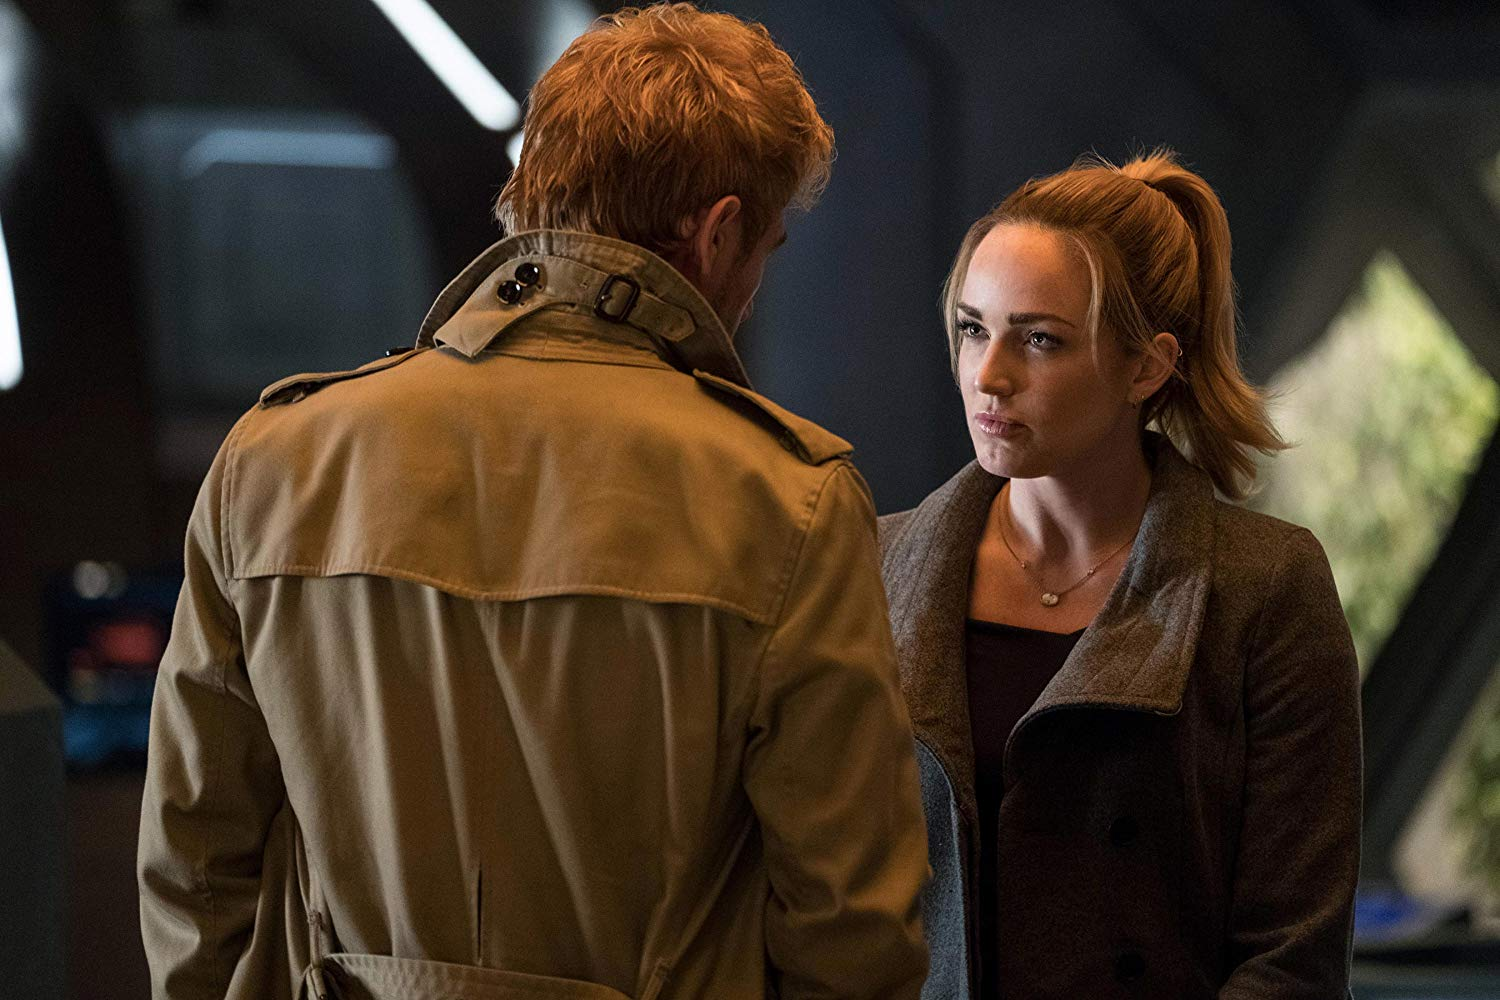 Legends of Tomorrow Star Teases 'Naked Scene' In The Upcoming Season!